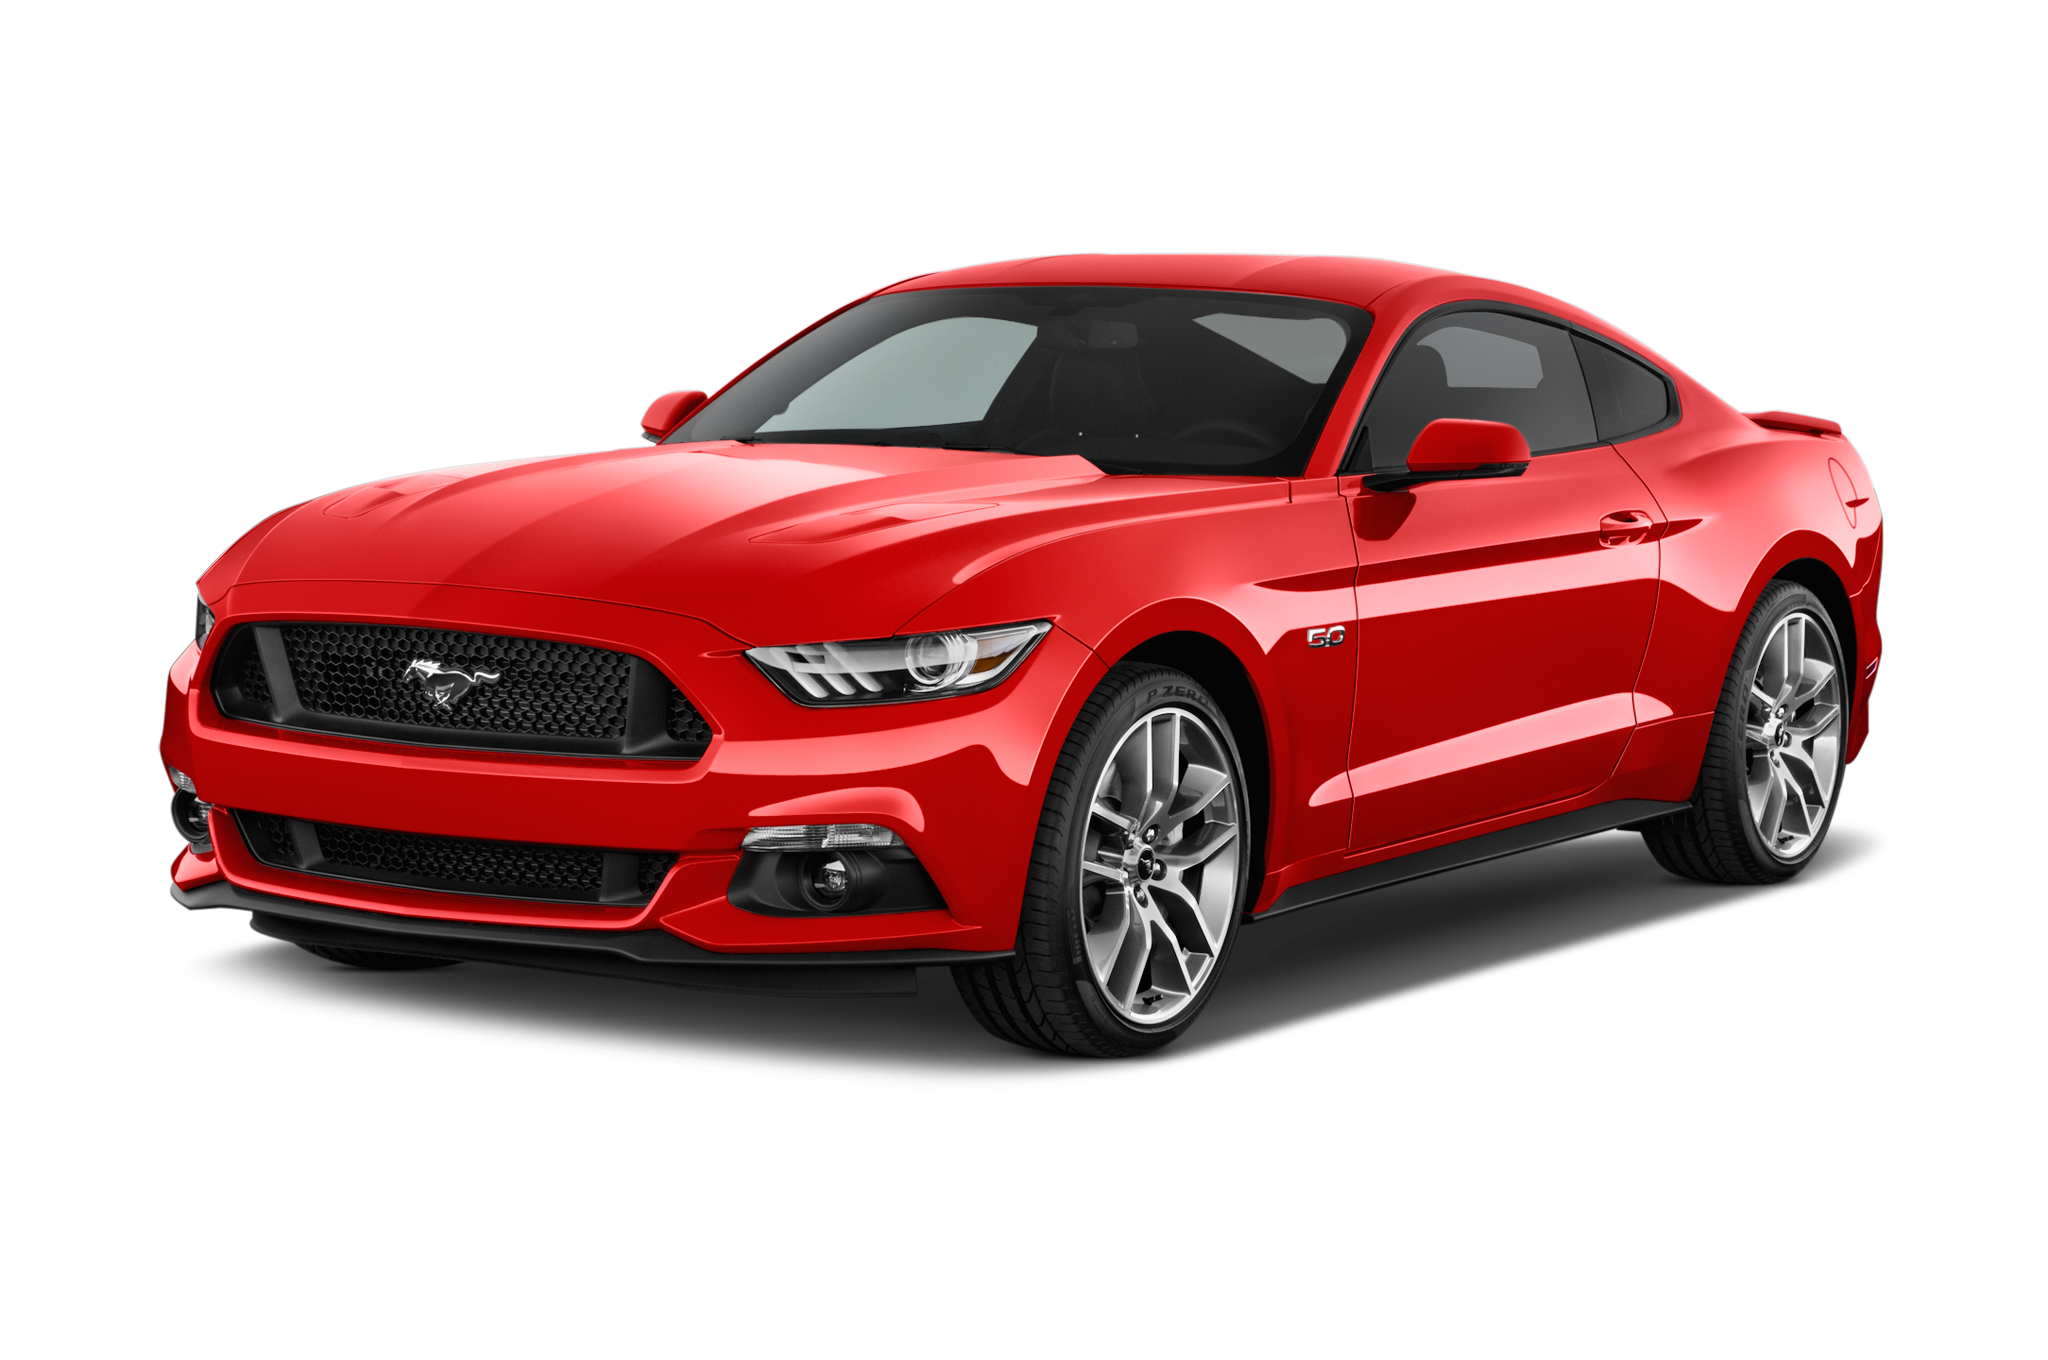 ford mustang 5.0 v8 gt - one-trick pony?